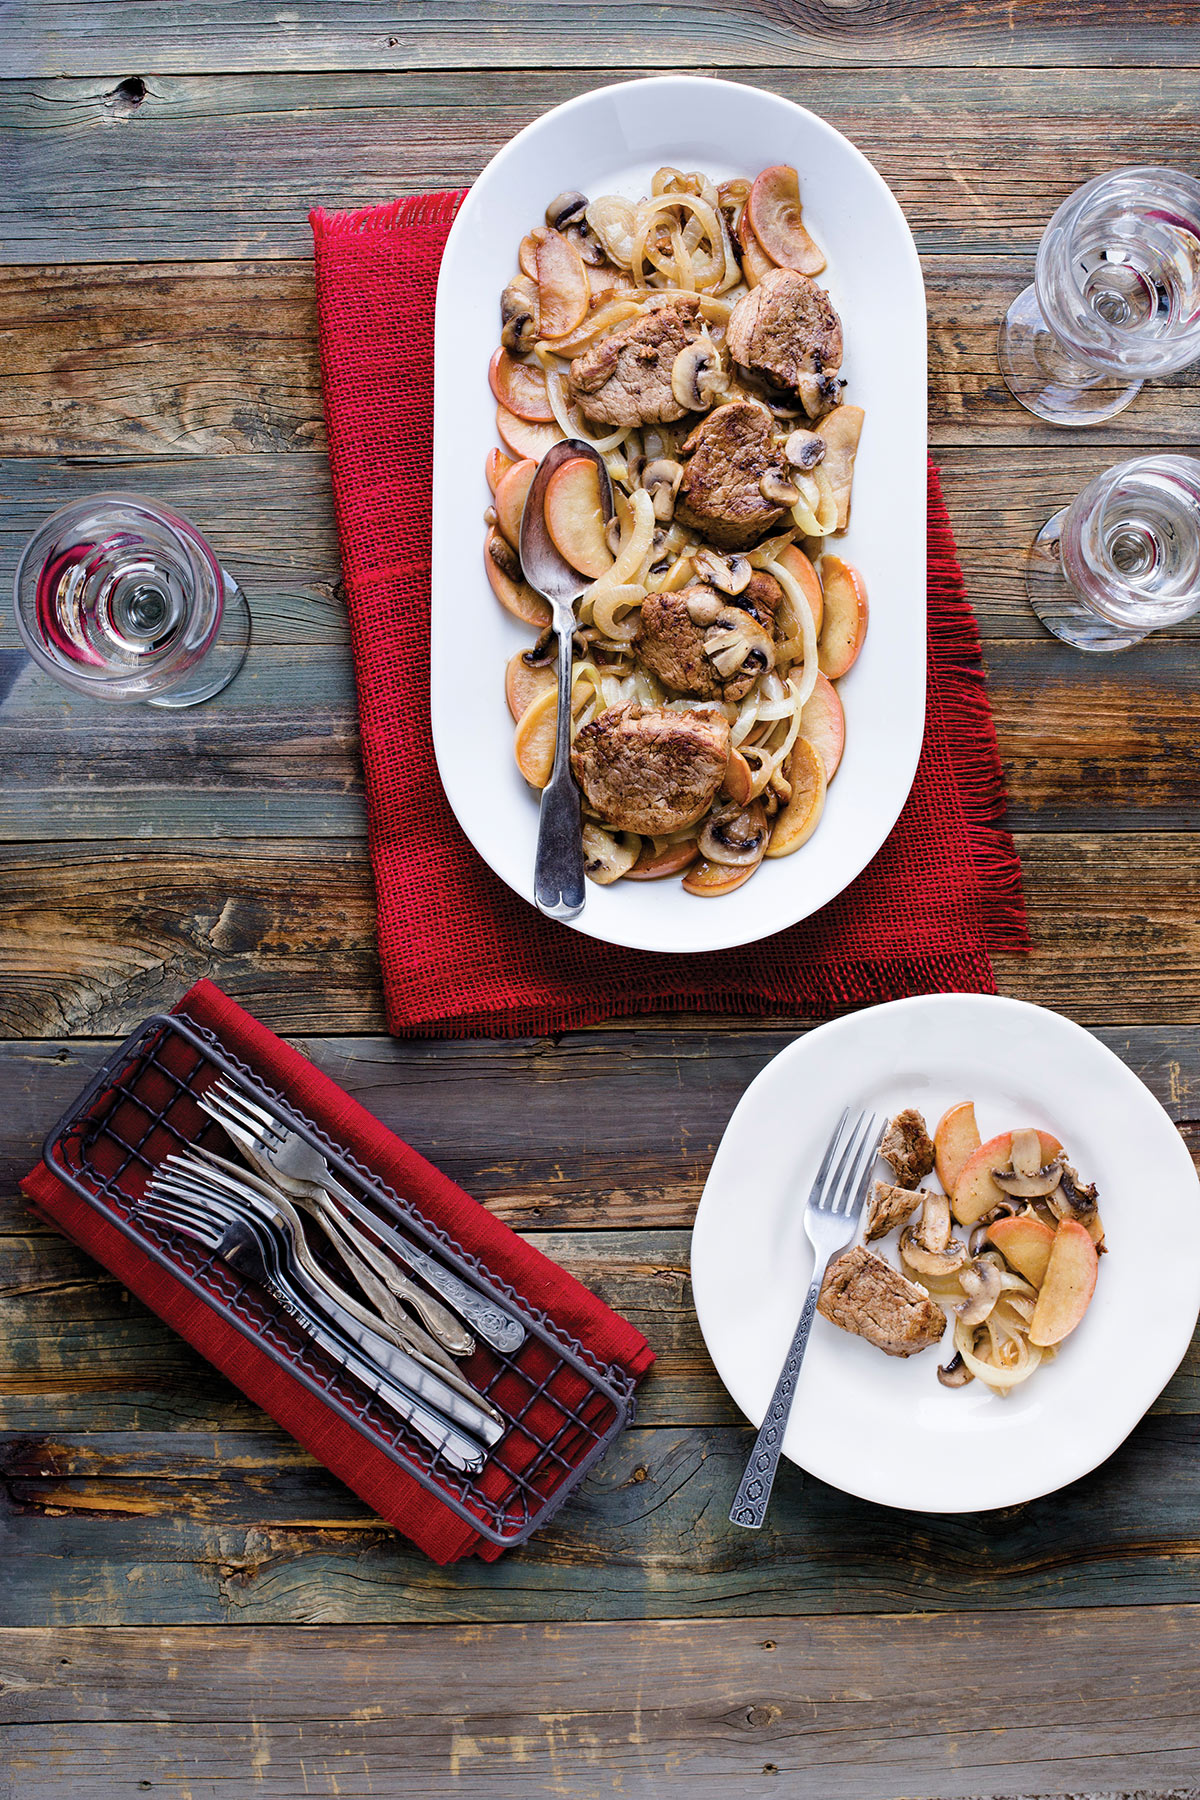 How D'ya Like Them Apples by Madge Baird pork tenderloin